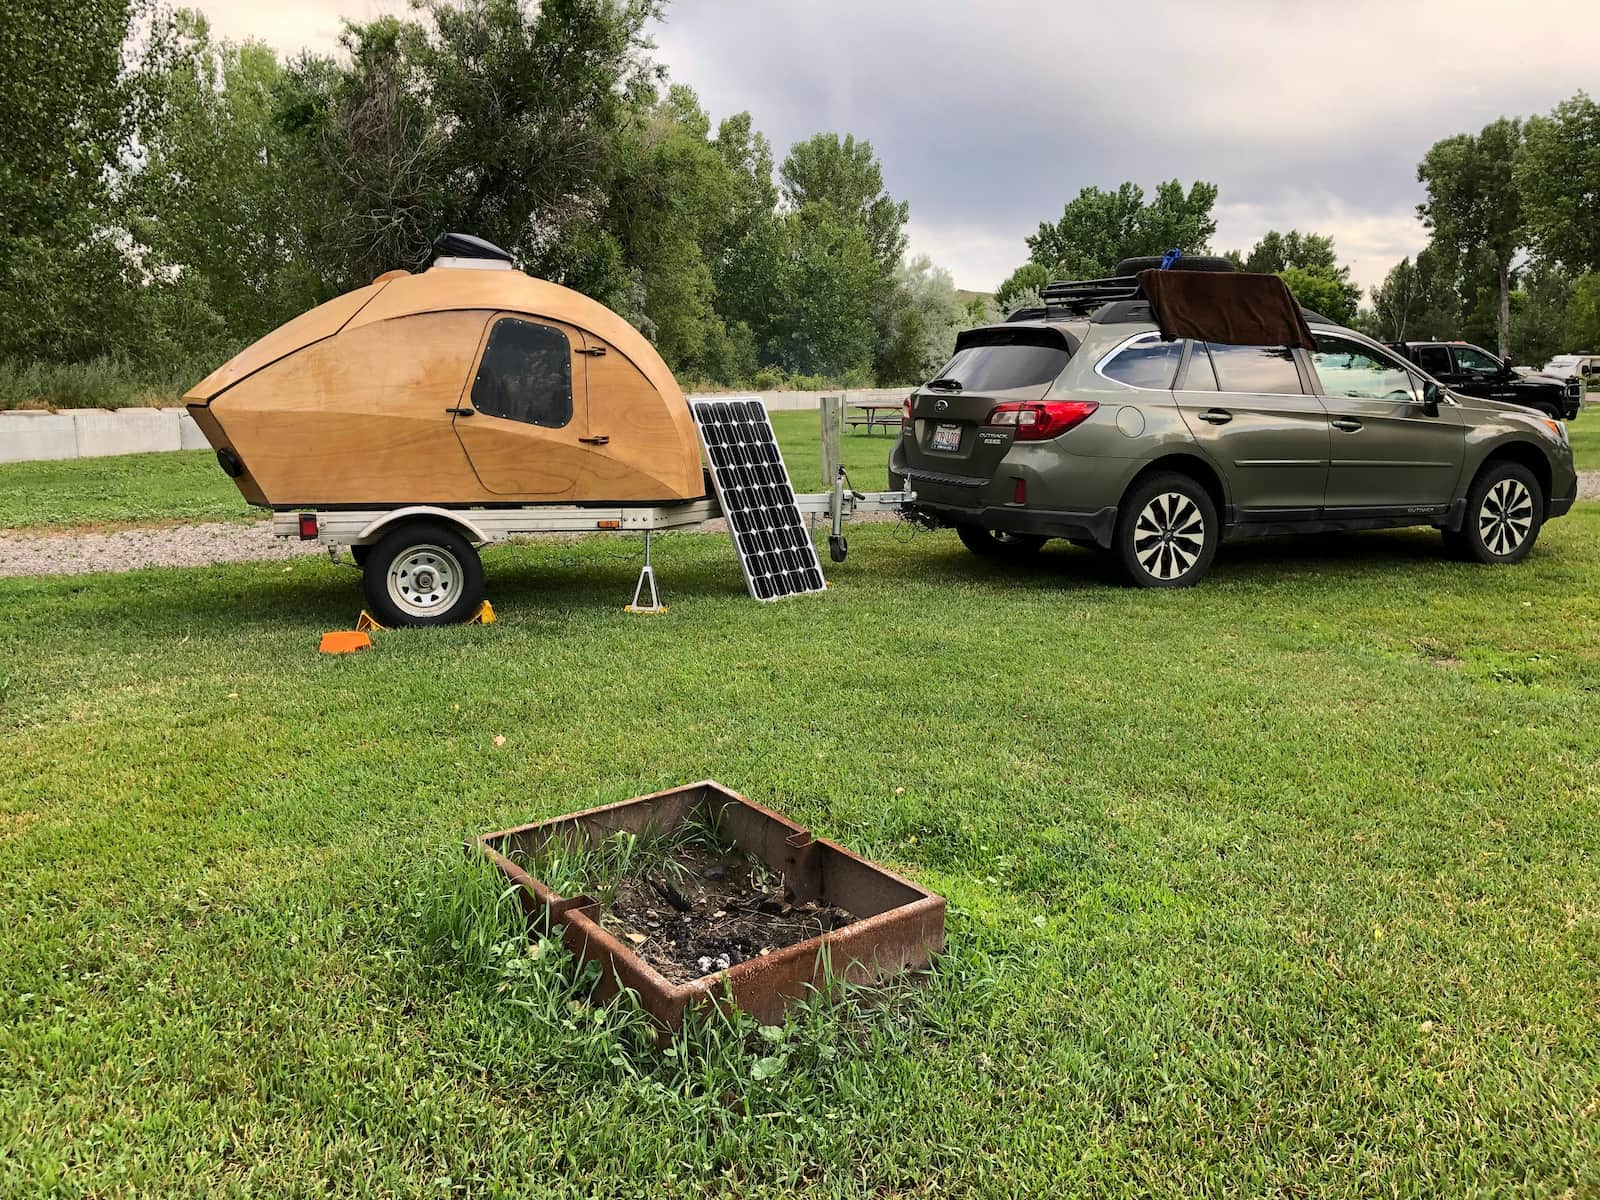 Subaru outback hooked up to wooden teardrop trailer at a campsite with square fire pit.